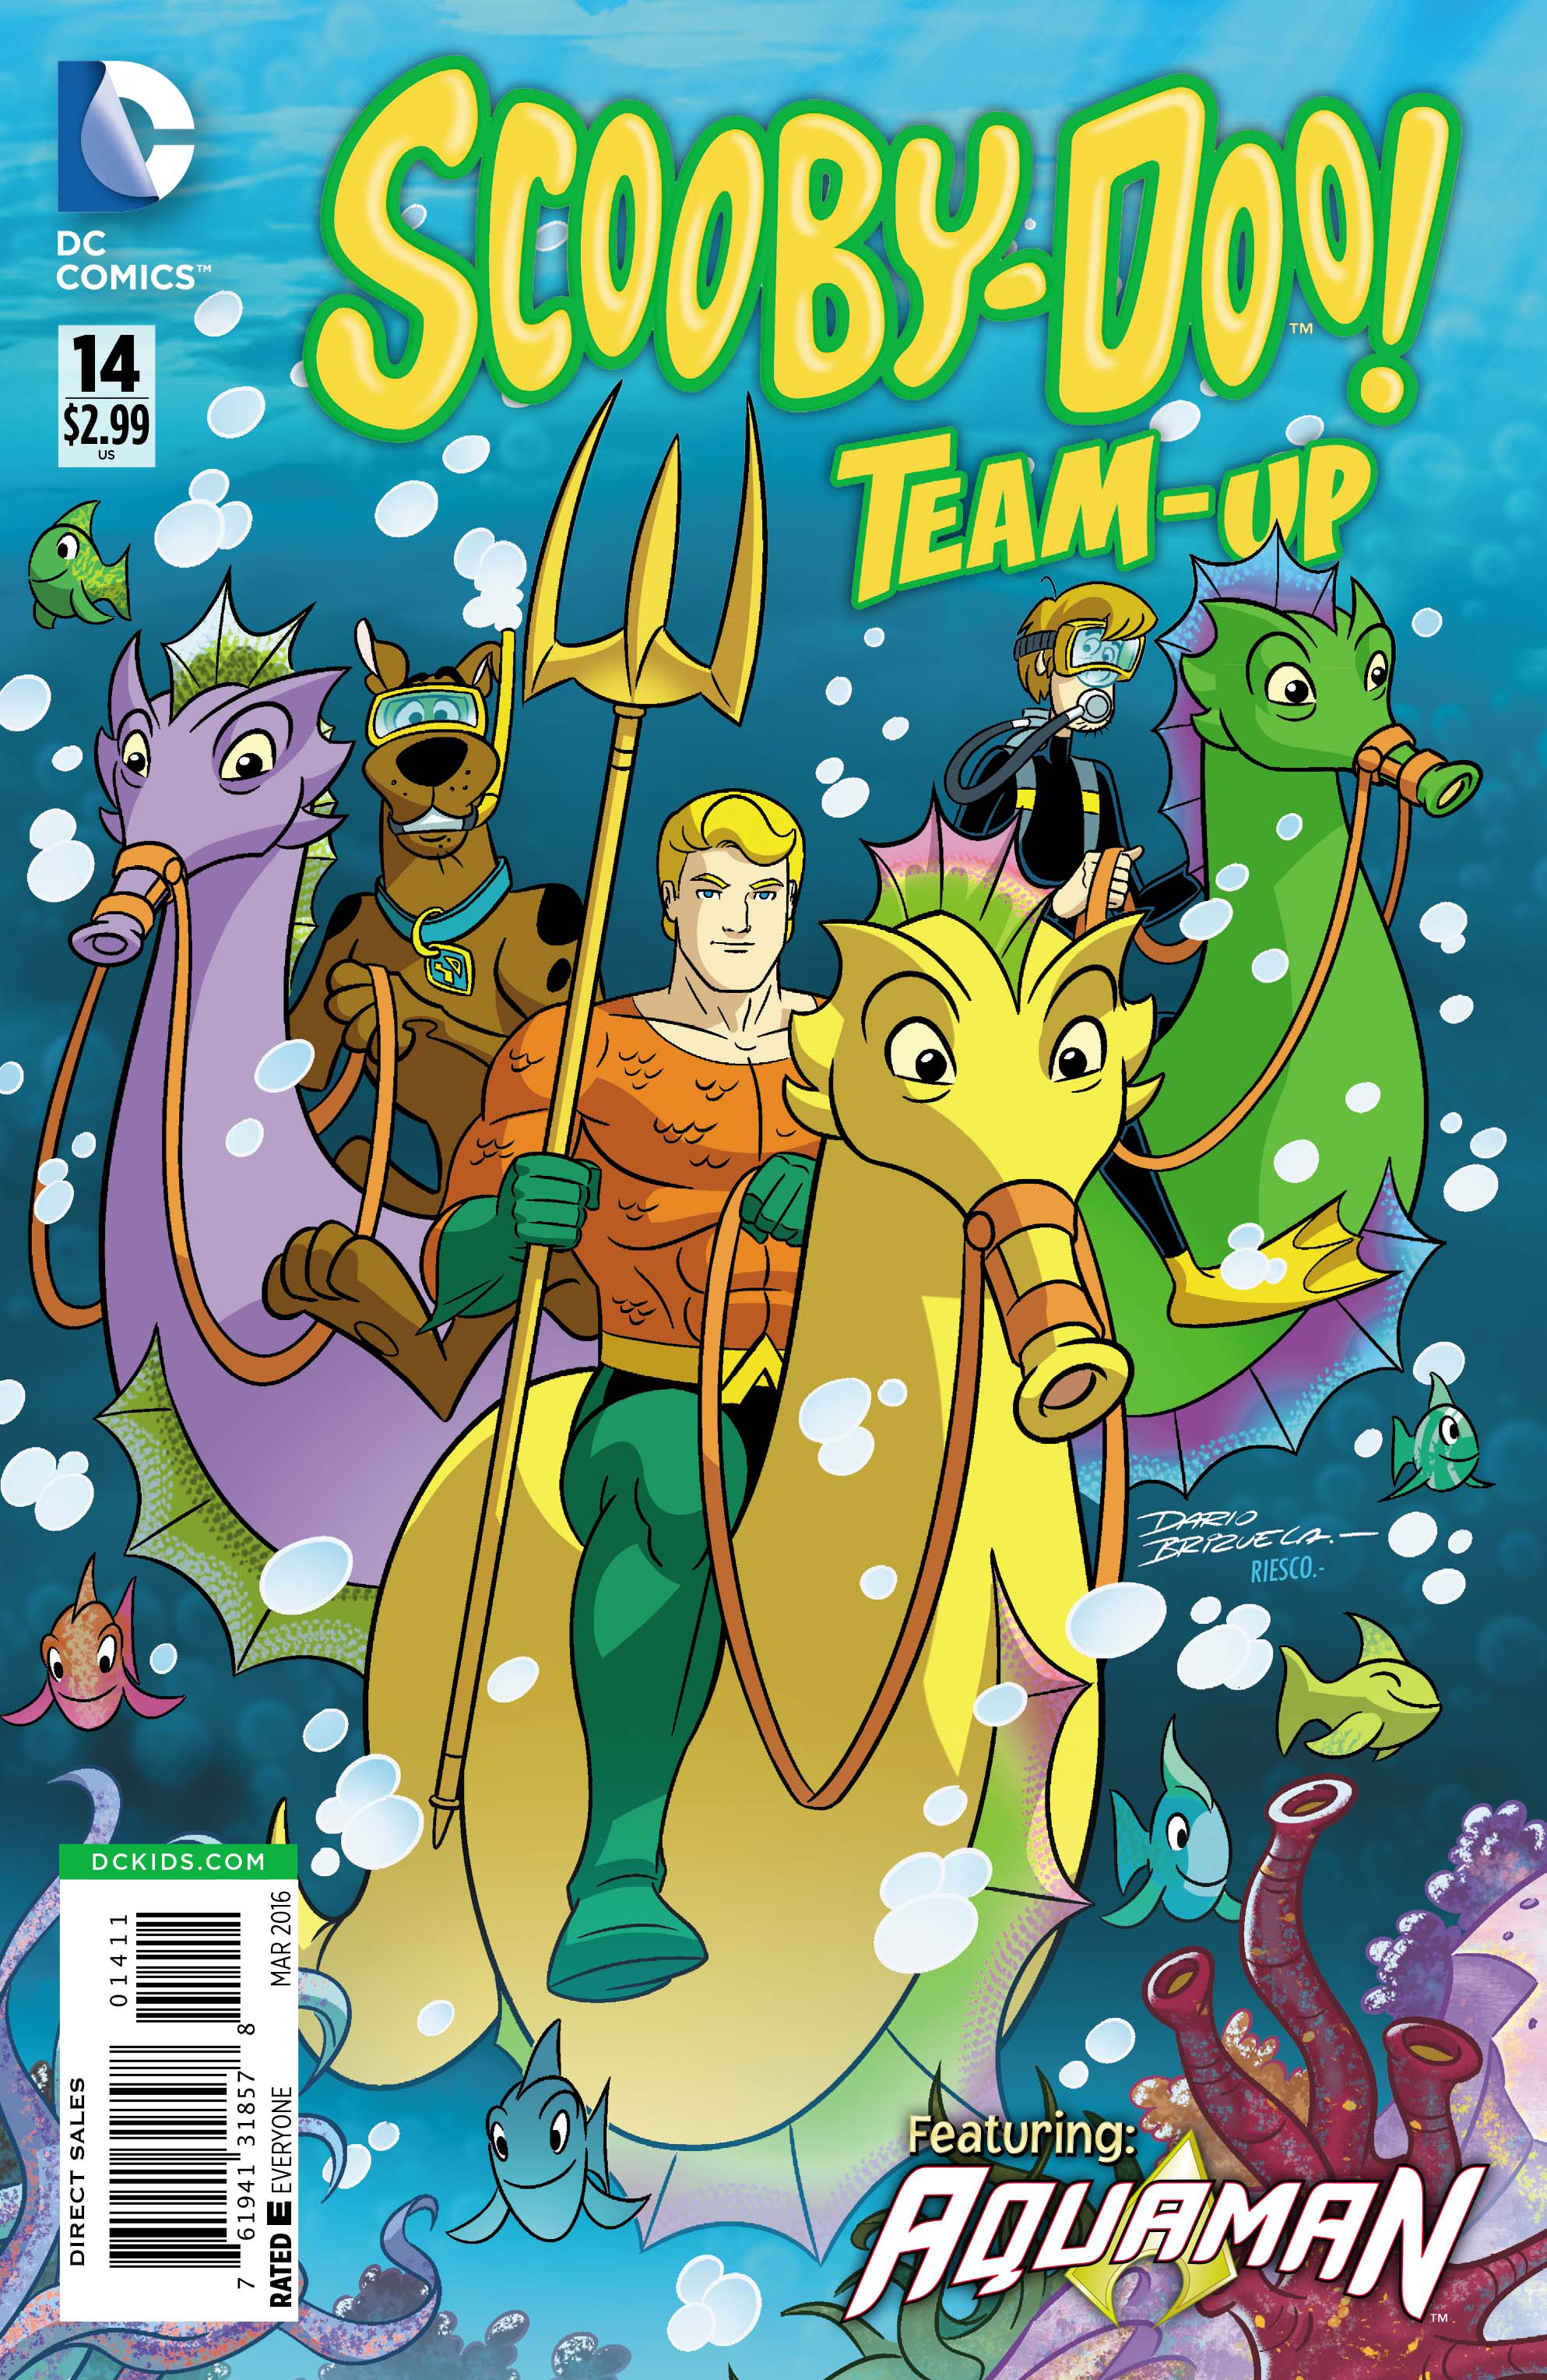 SCOOBY DOO TEAM UP #14